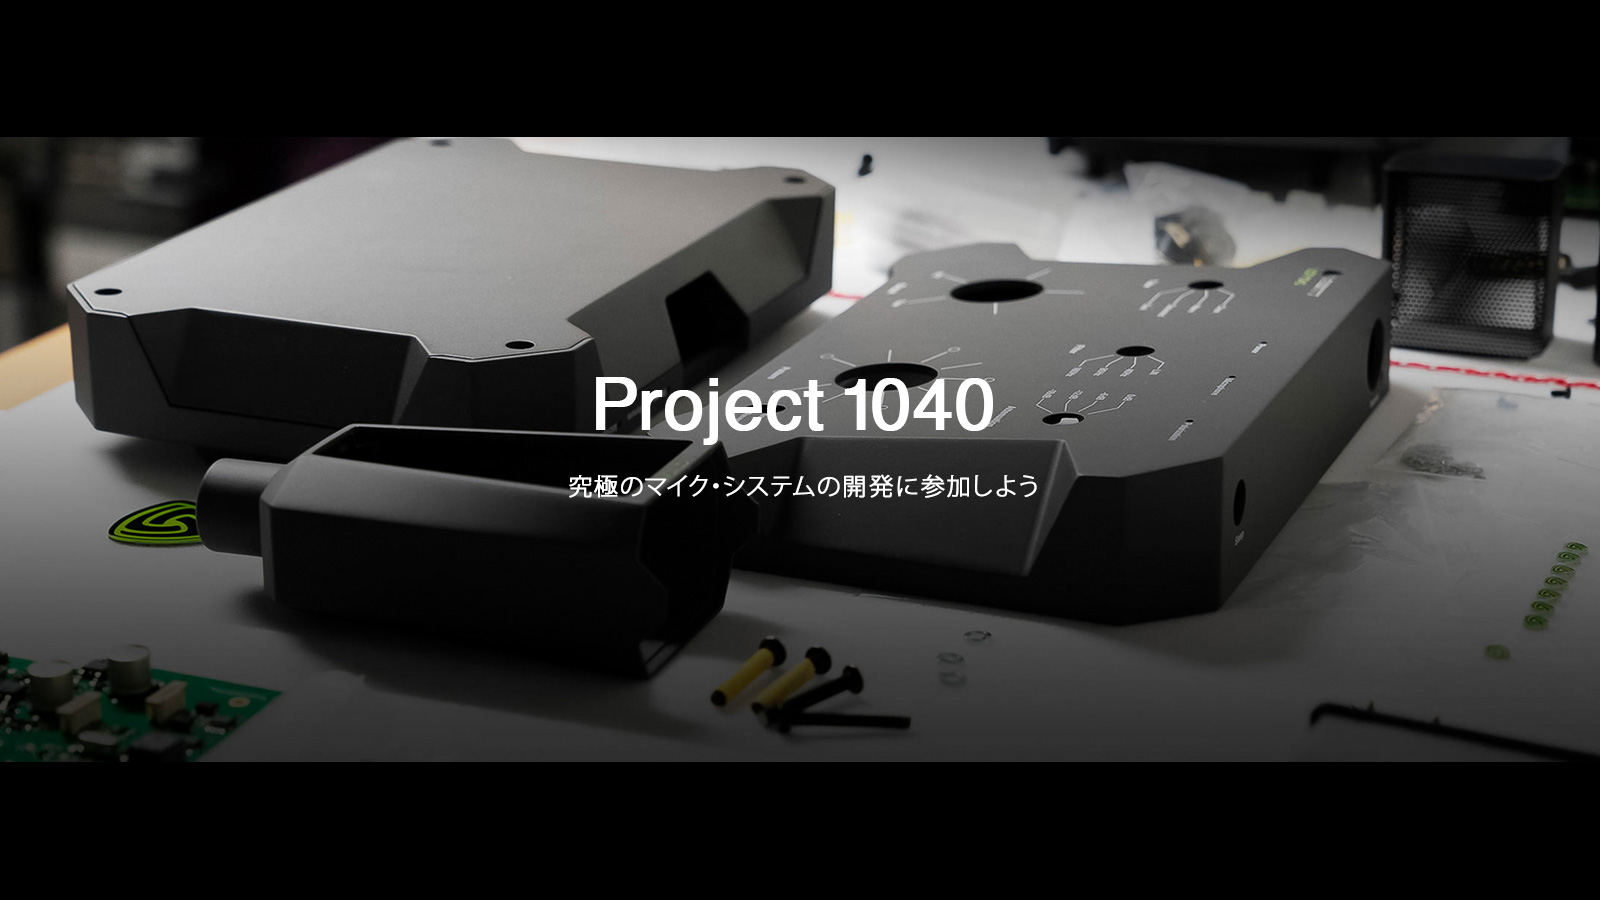 Project 1040